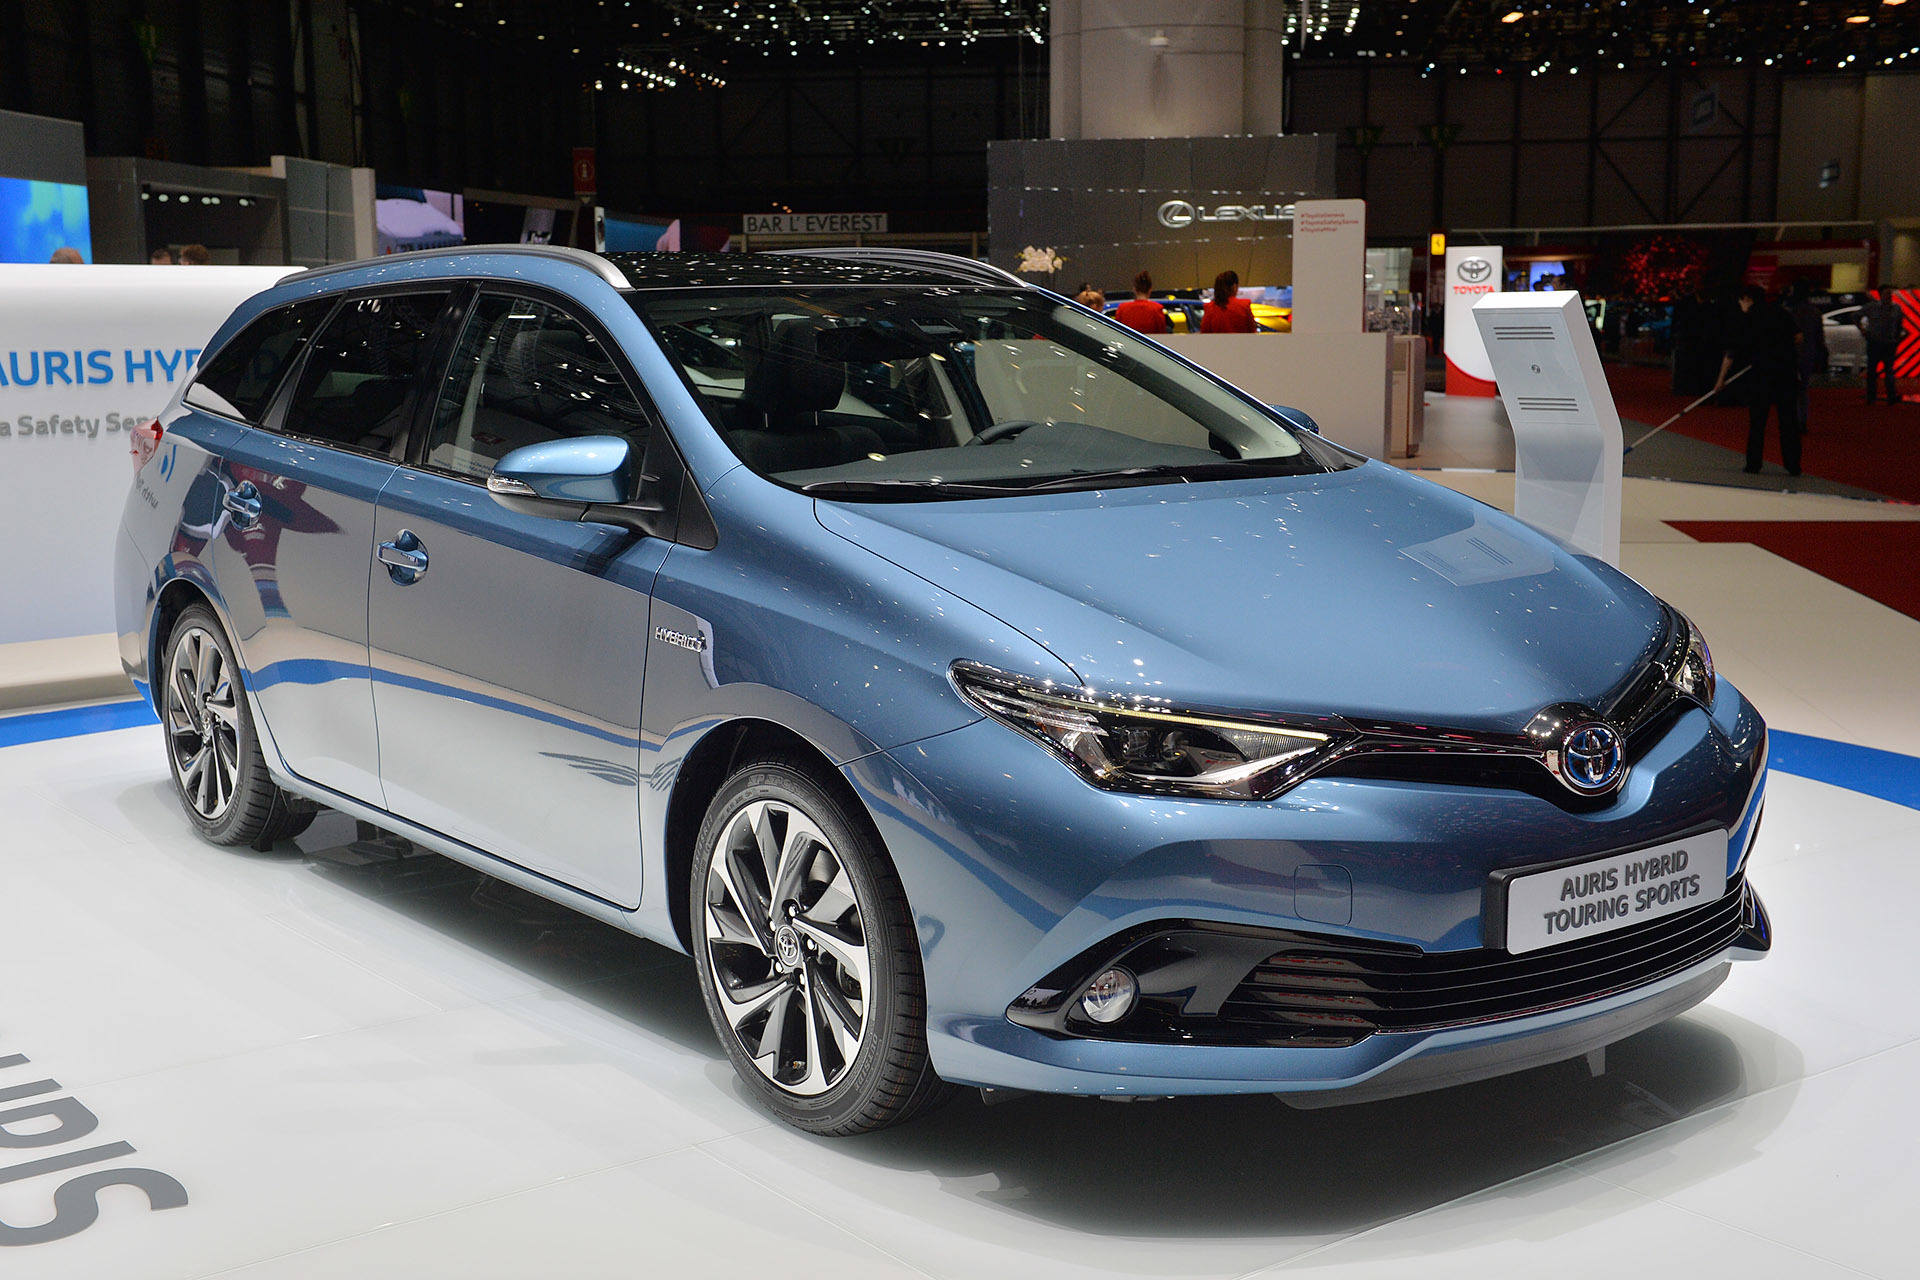 2015 toyota auris hybrid geneva 2015 photo gallery autoblog. Black Bedroom Furniture Sets. Home Design Ideas